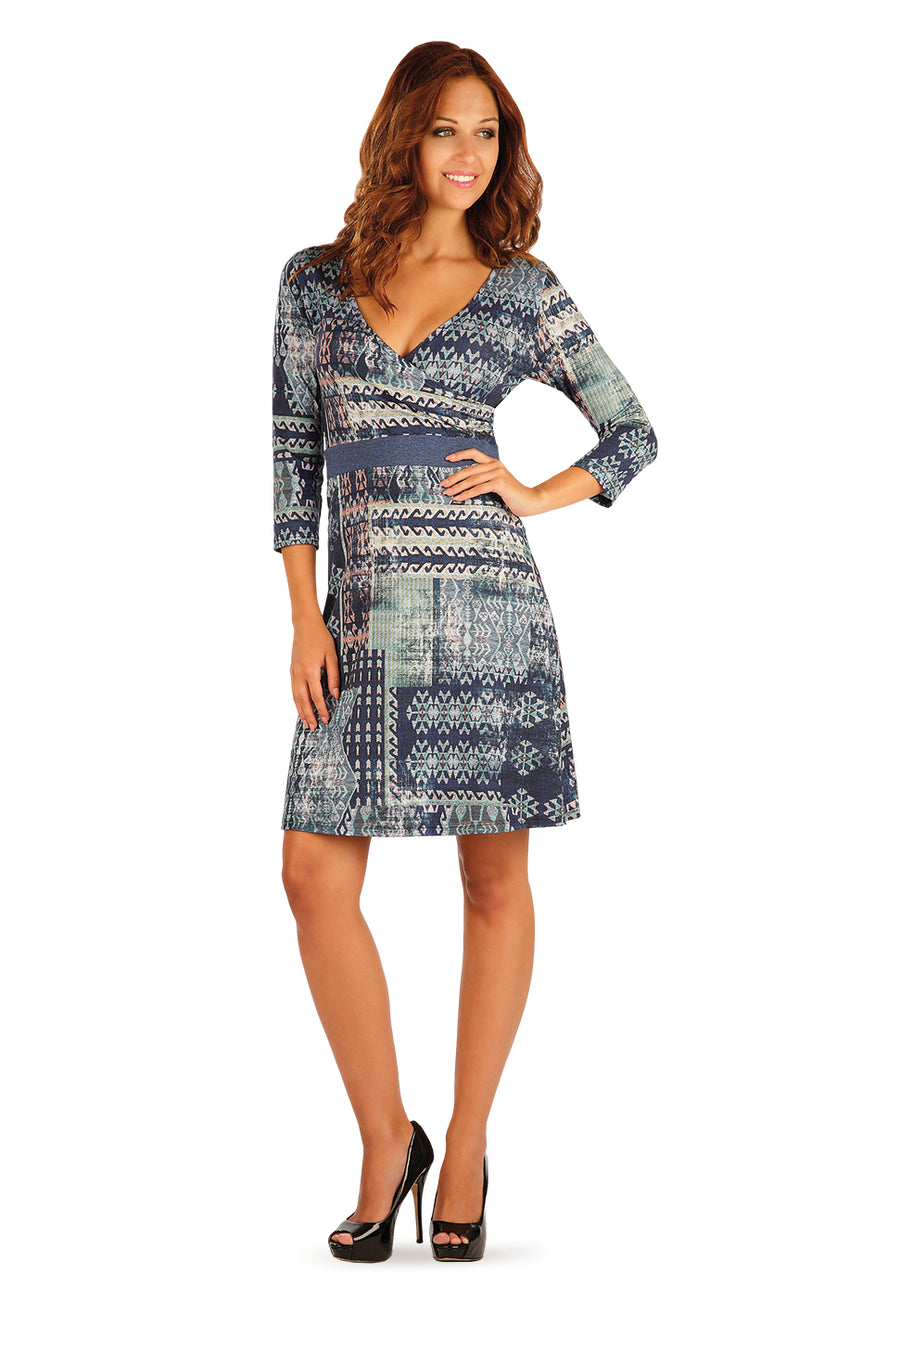 Printed Dress With 3/4 Sleeve - onelike